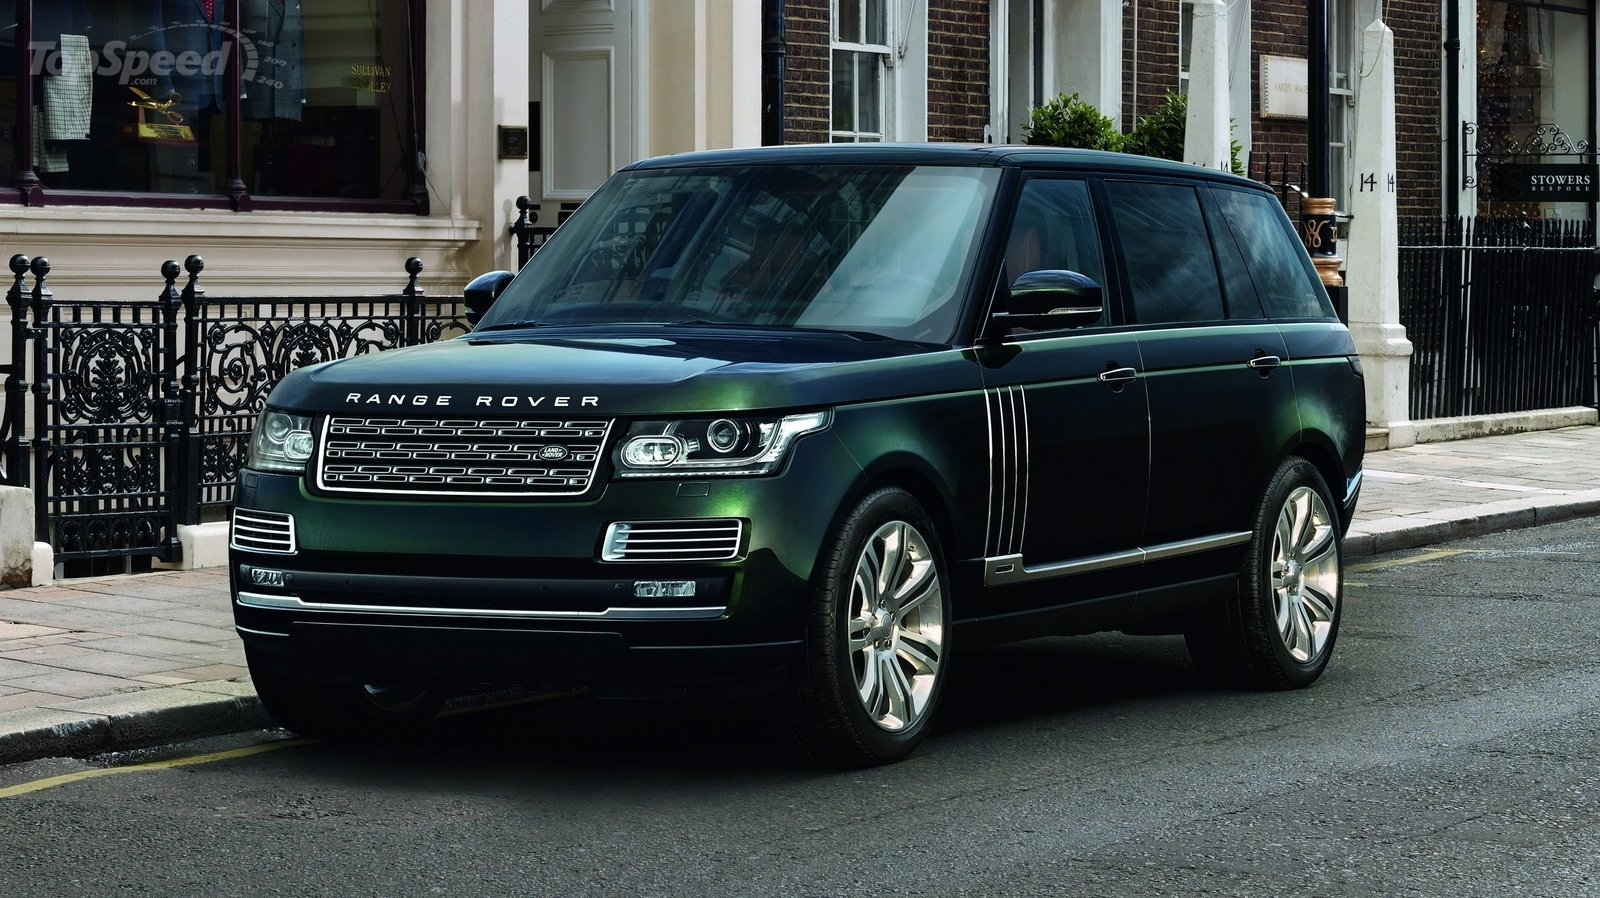 Land Rover Vs Range Rover Comparison Land Rover Range Rover Suv 2015 Vs Land